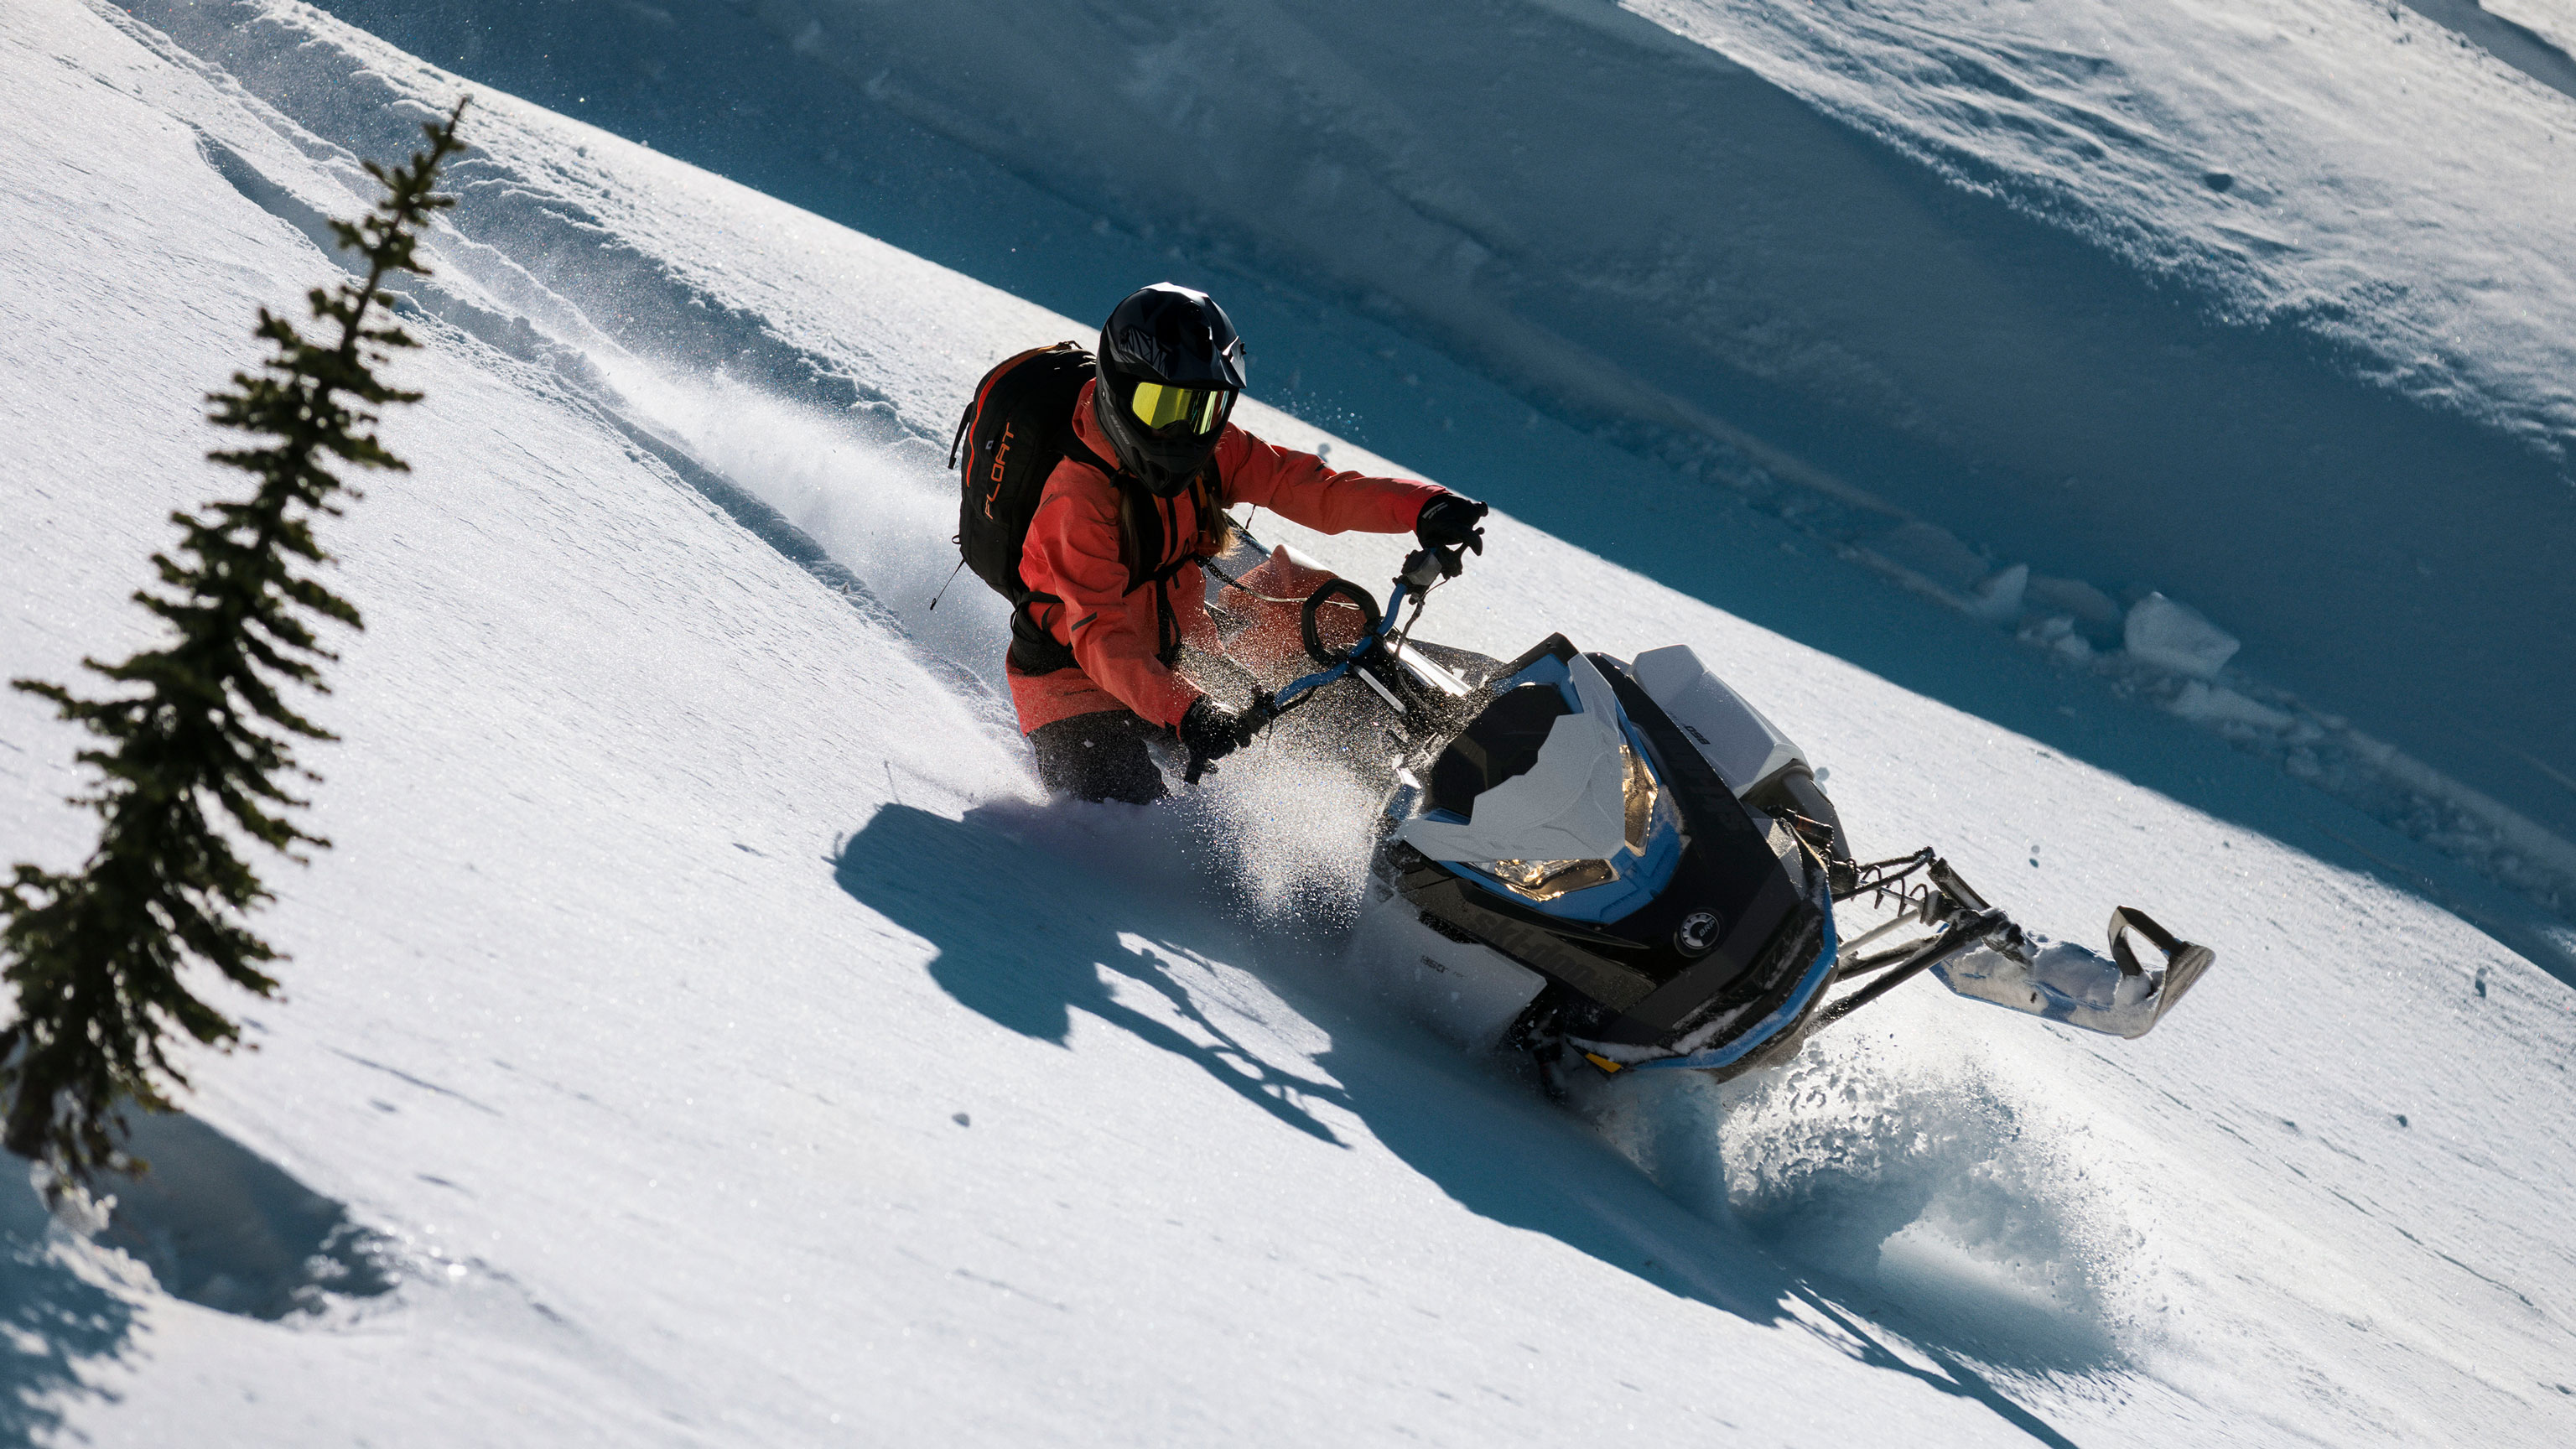 2022 Ski-Doo Summit carving in deep-snow